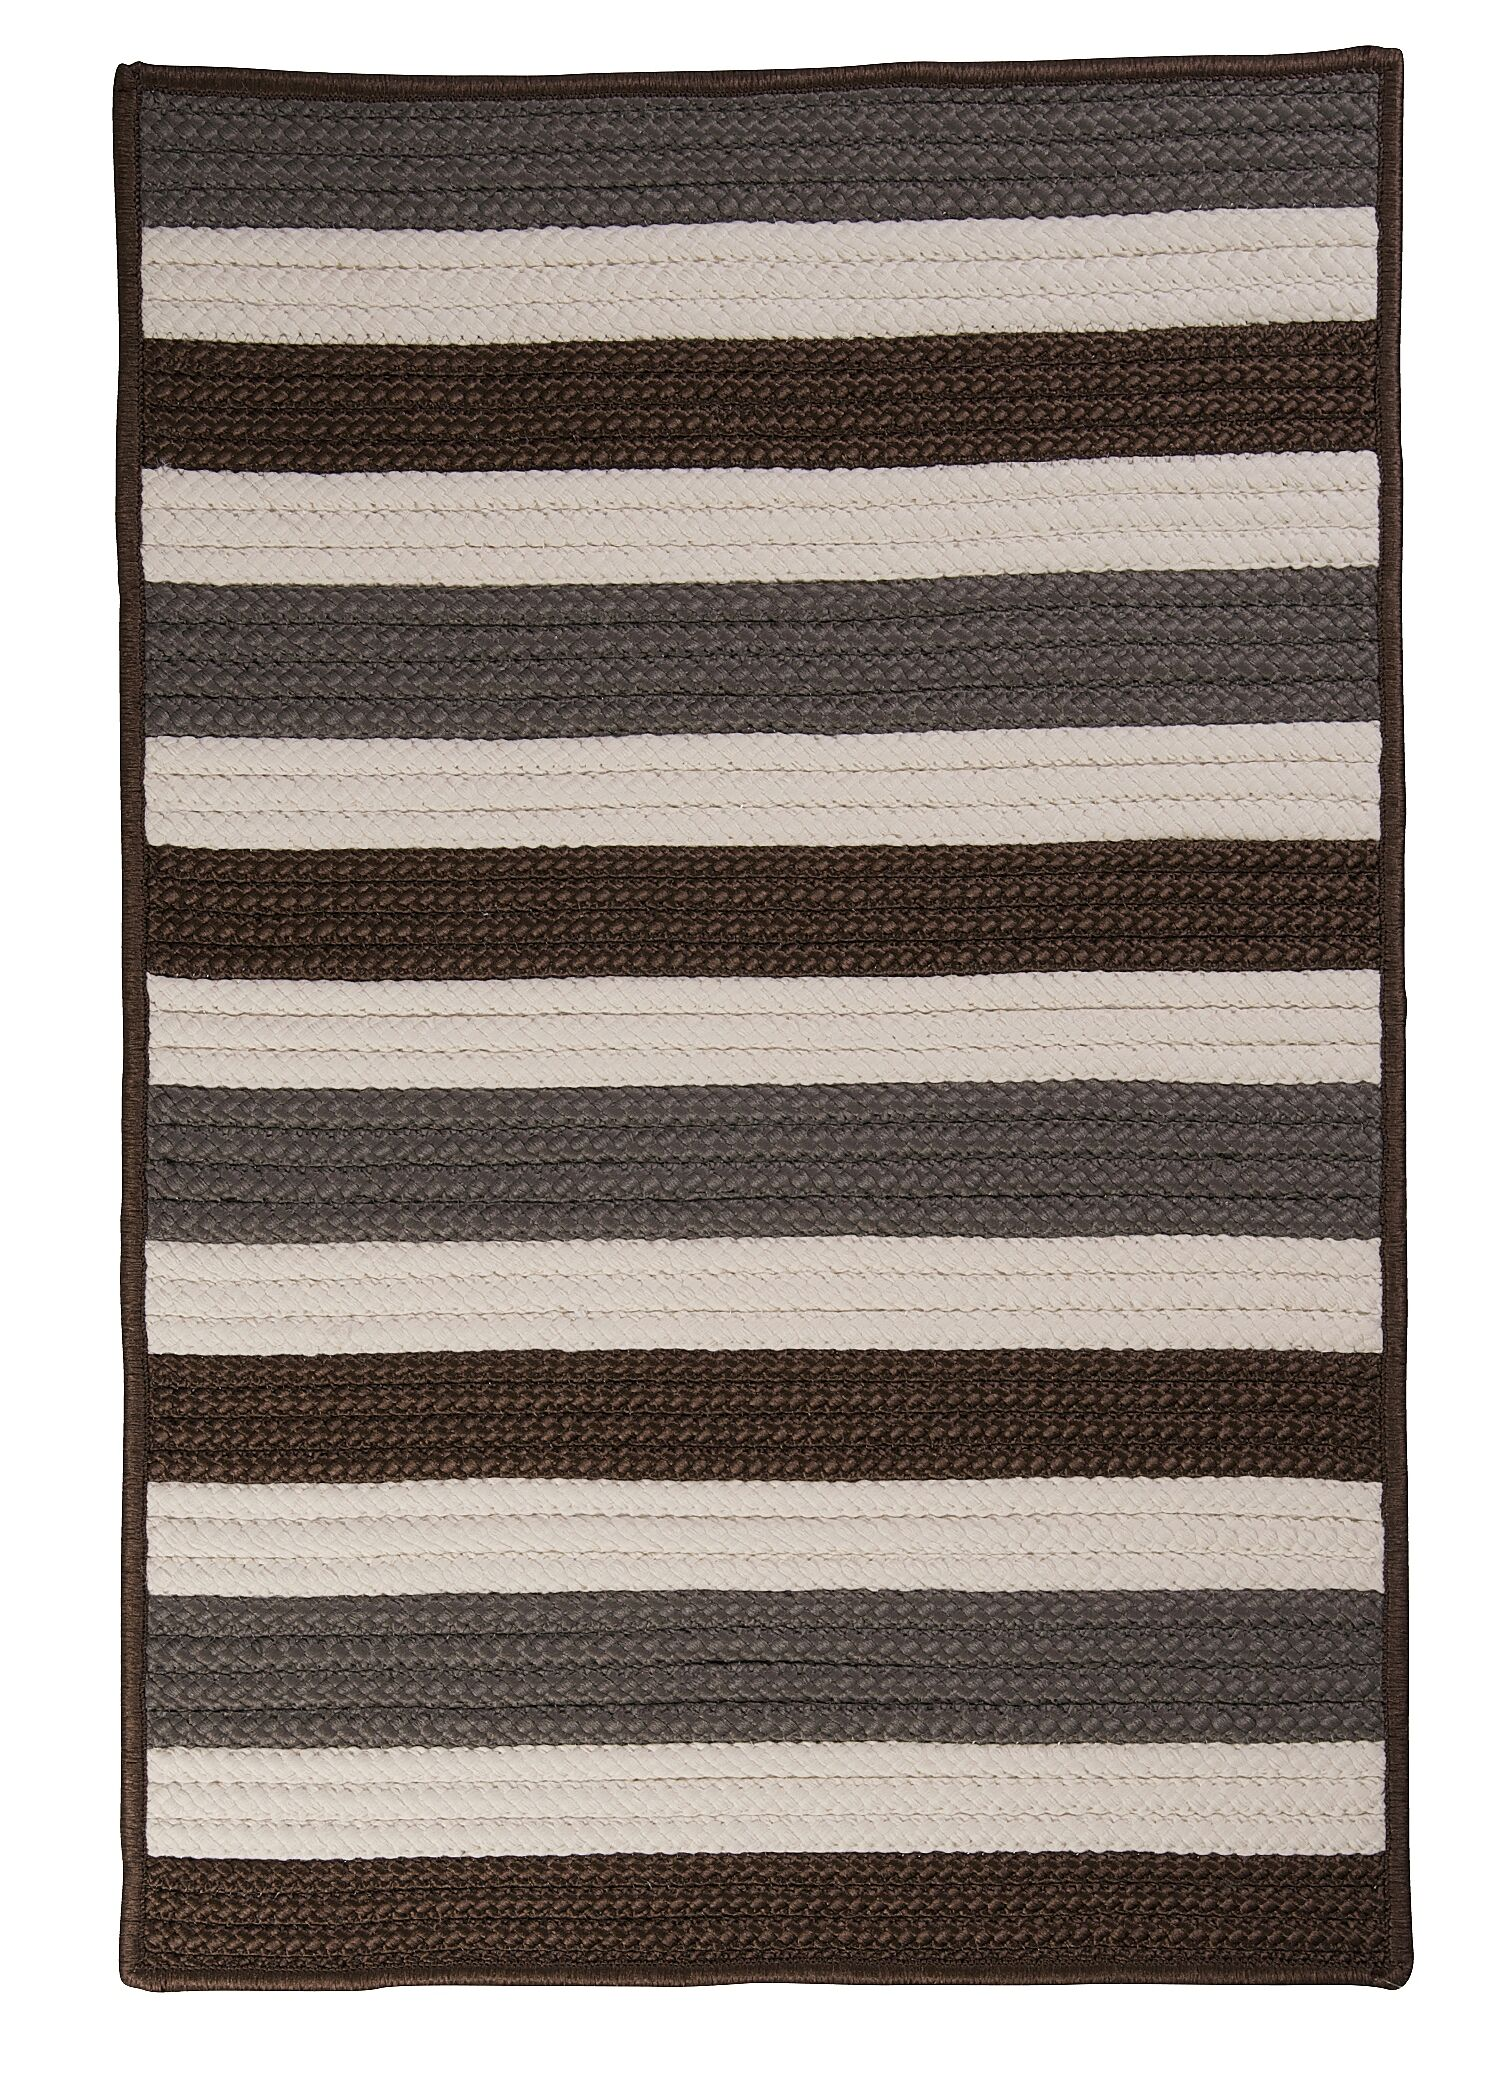 Eagle Lake Stone Braided Indoor/Outdoor Area Rug Rug Size: Rectangle 5' x 8'